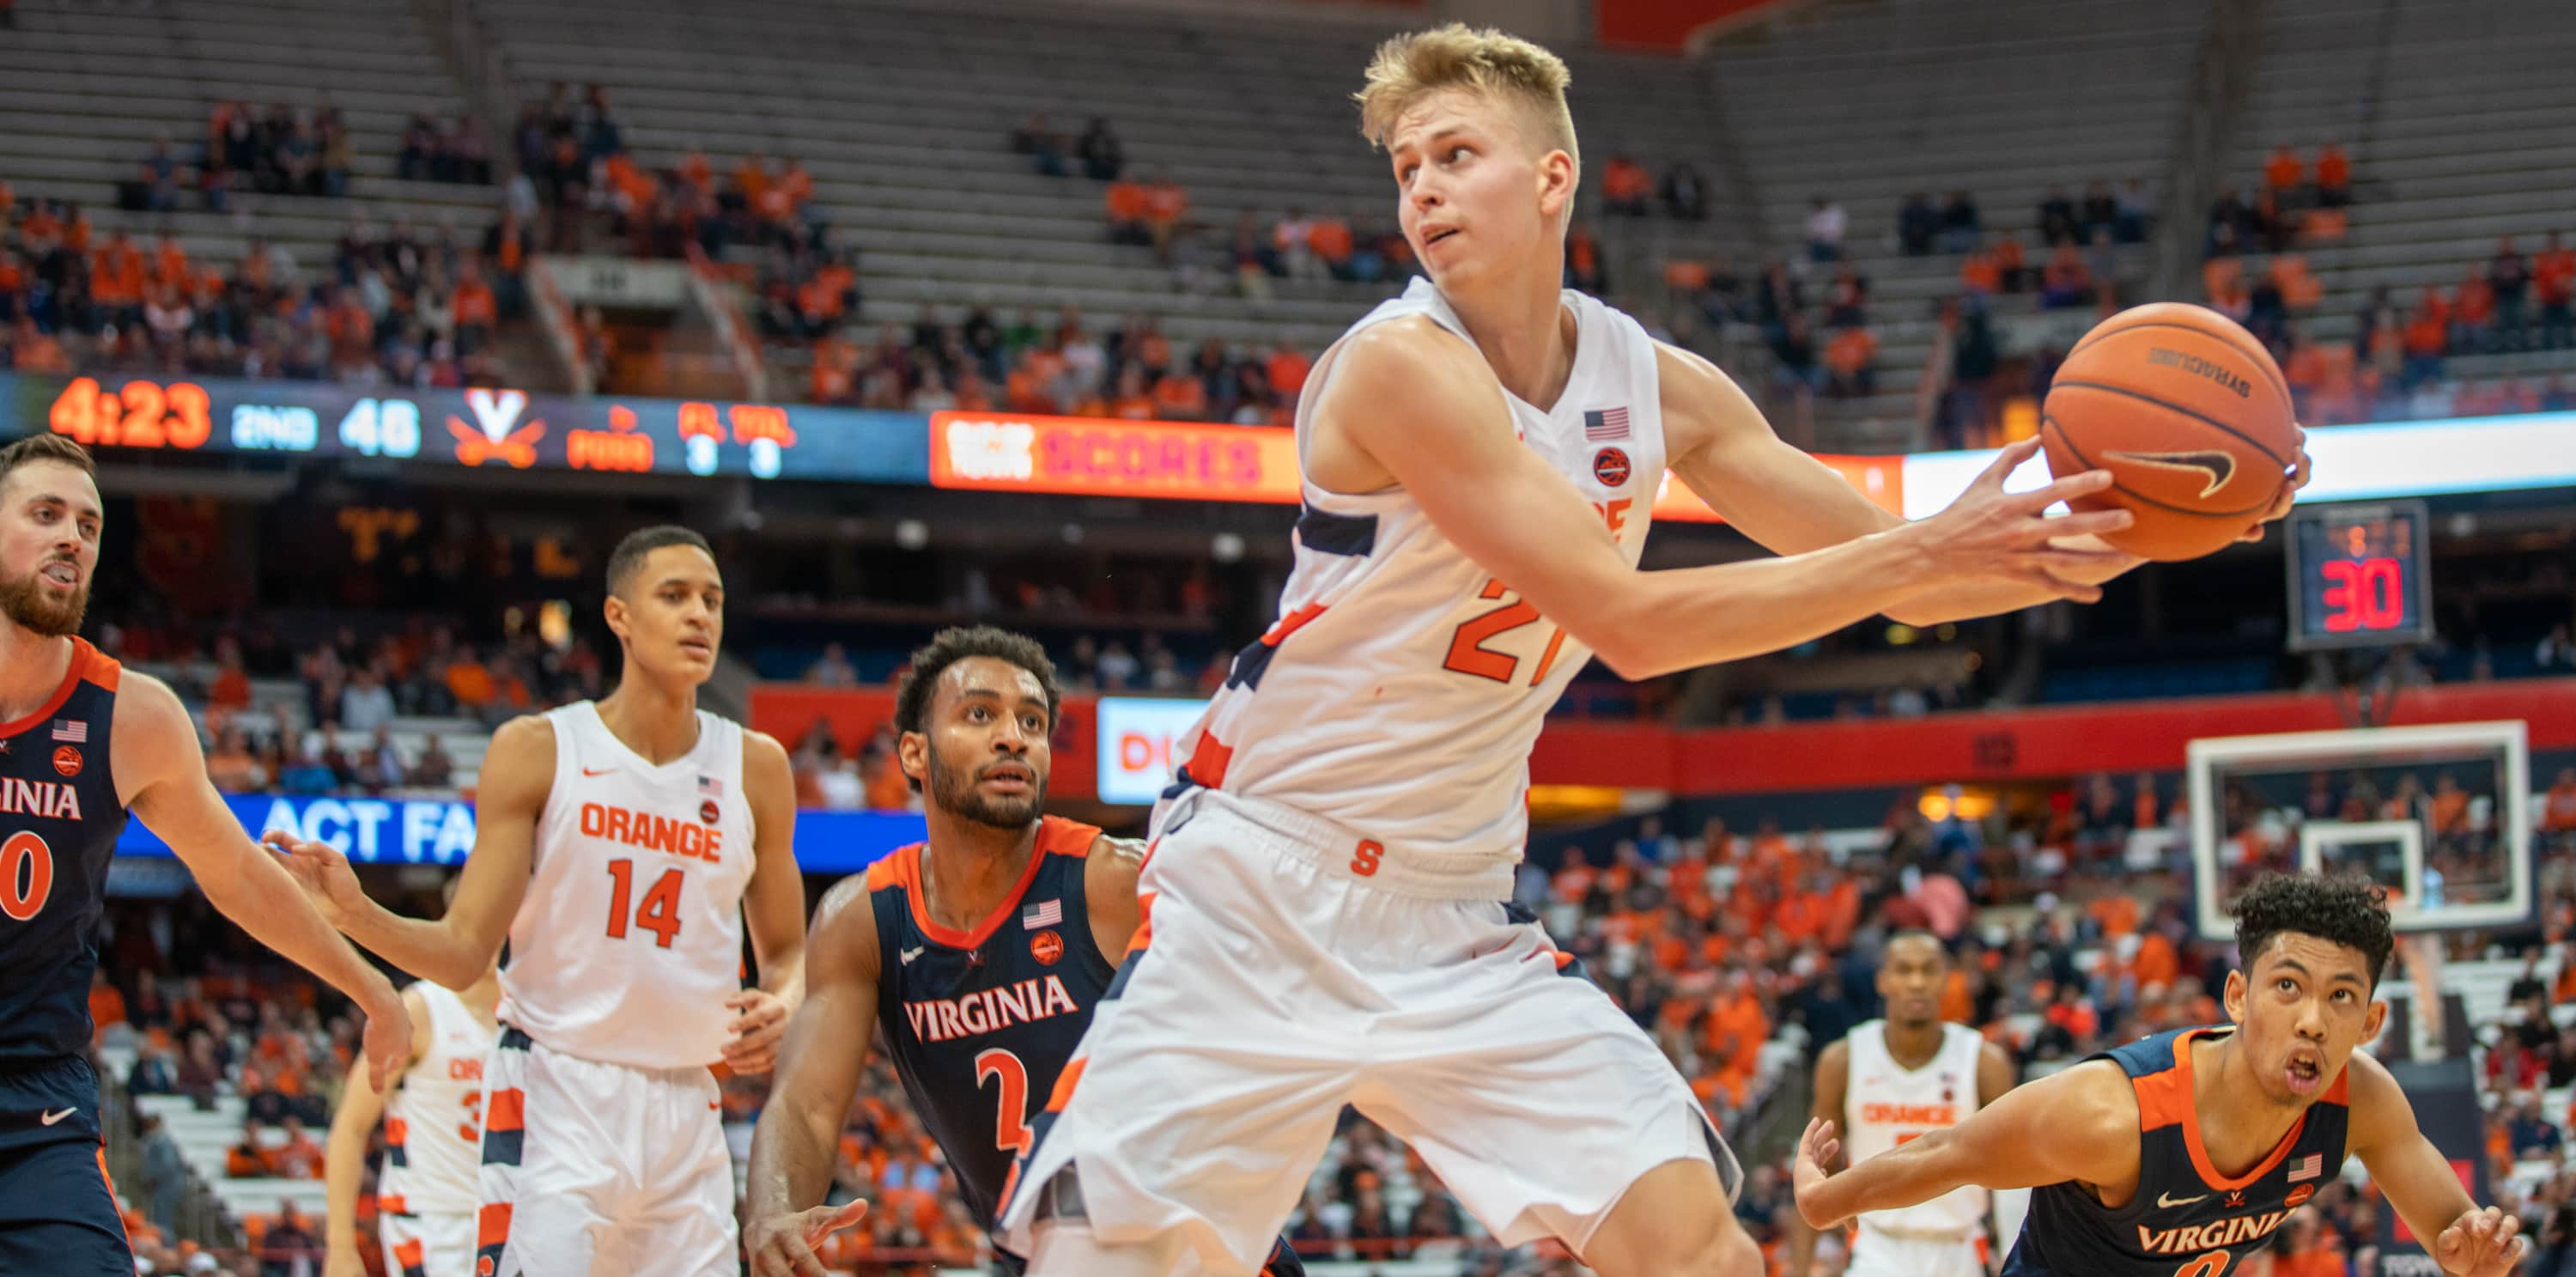 Marek Dolezaj under pressure during SU's loss to Virginia on Nov. 6, 2019.